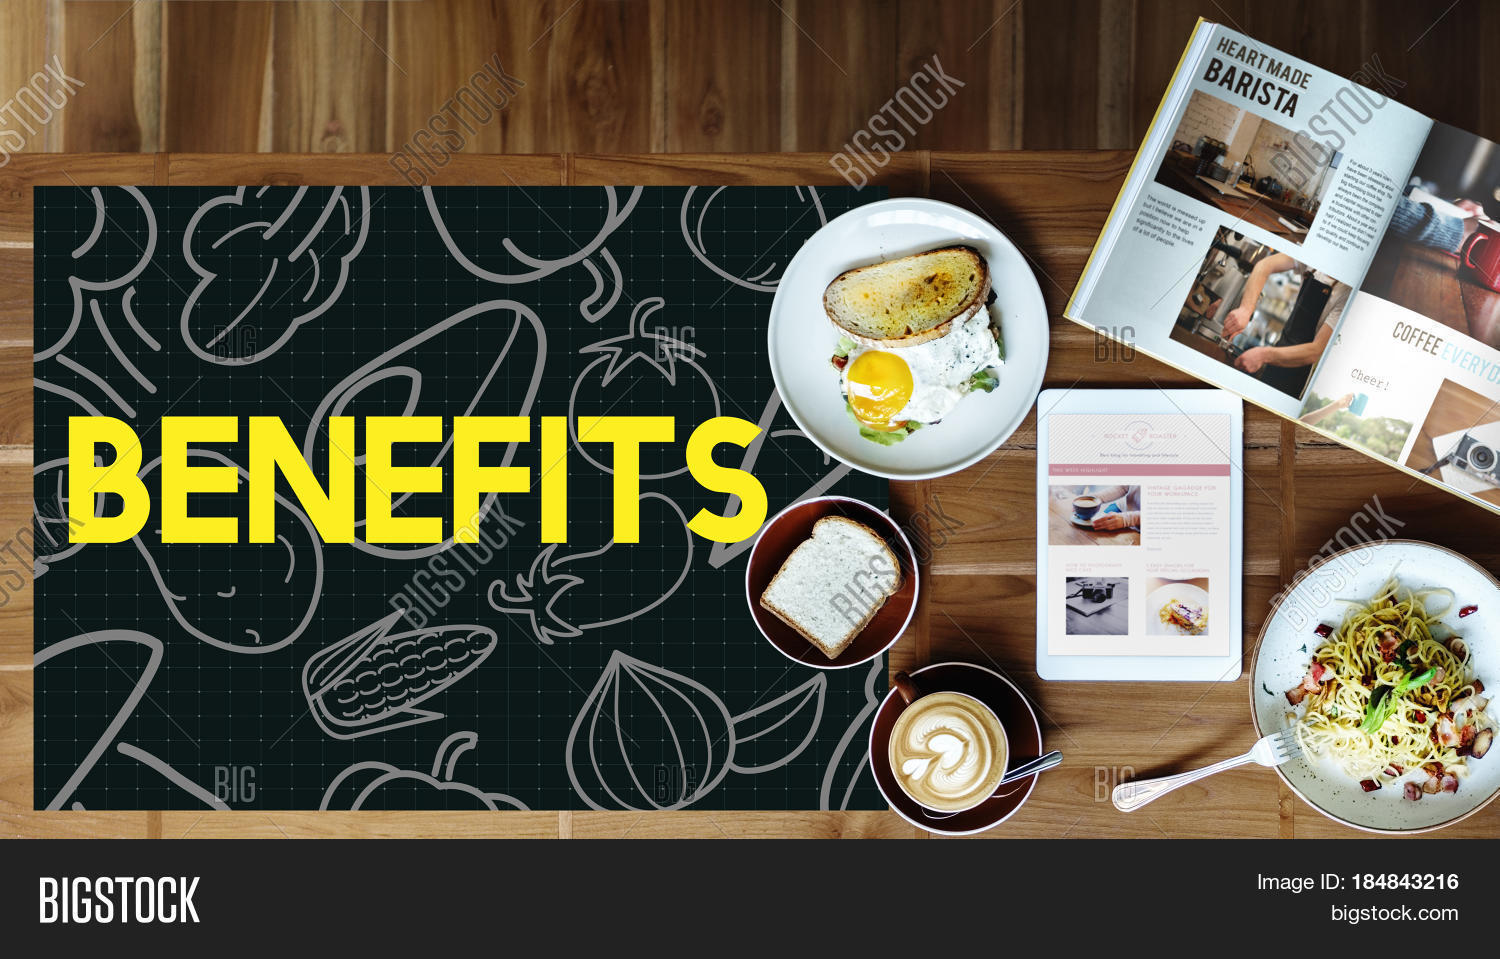 Breakfast Meal On A Wooden Table And Blackboard With